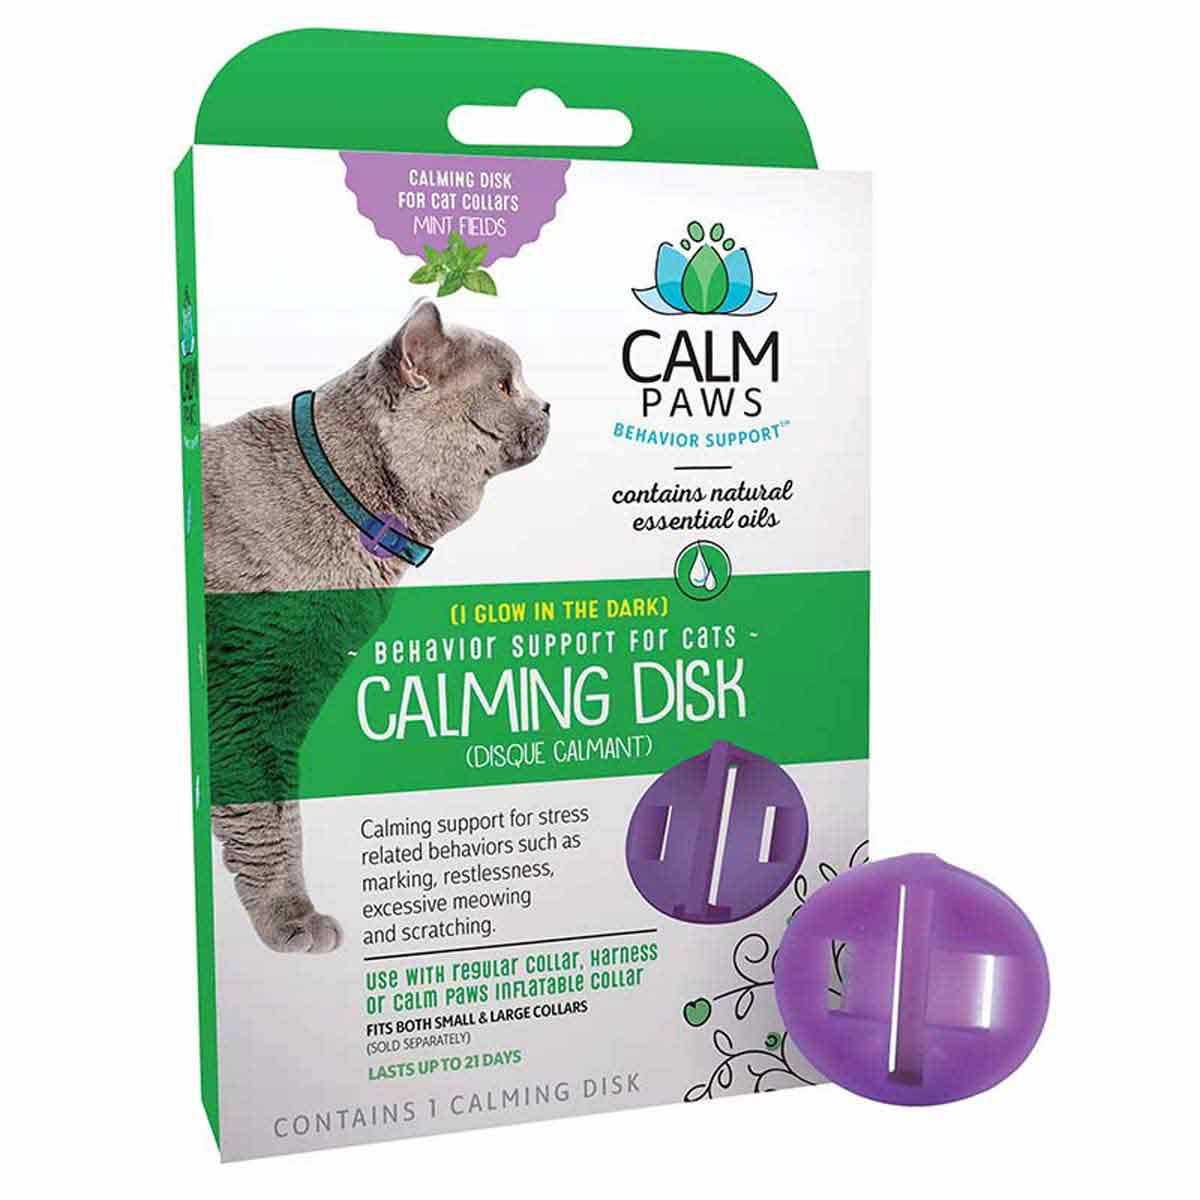 Calm Paws Calming Disk for Cats outside of Box